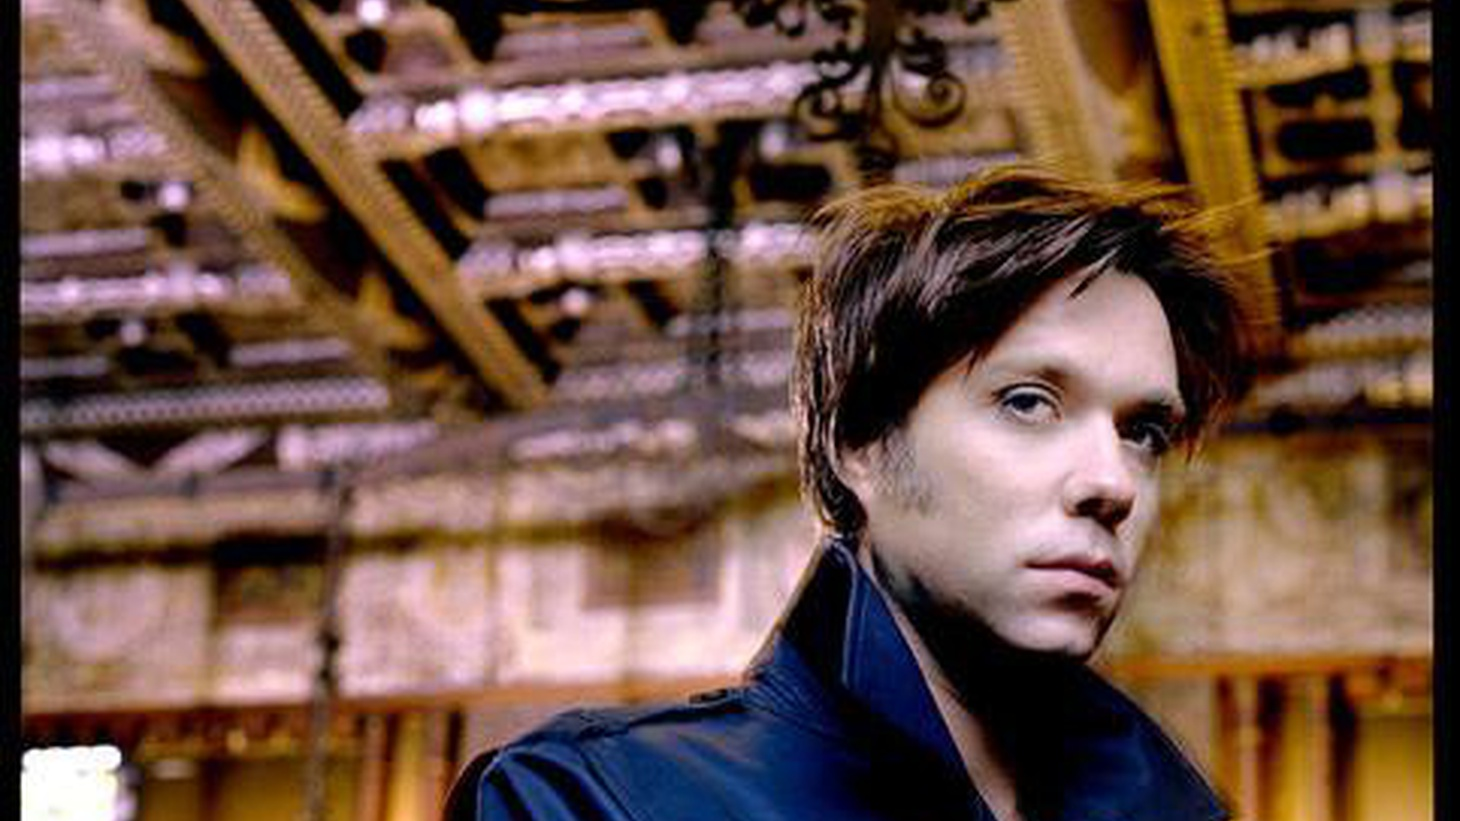 The last few years have been eventful for Rufus Wainwright, with experiences inform his seventh recording. Today's Top Tune is a world premiere…